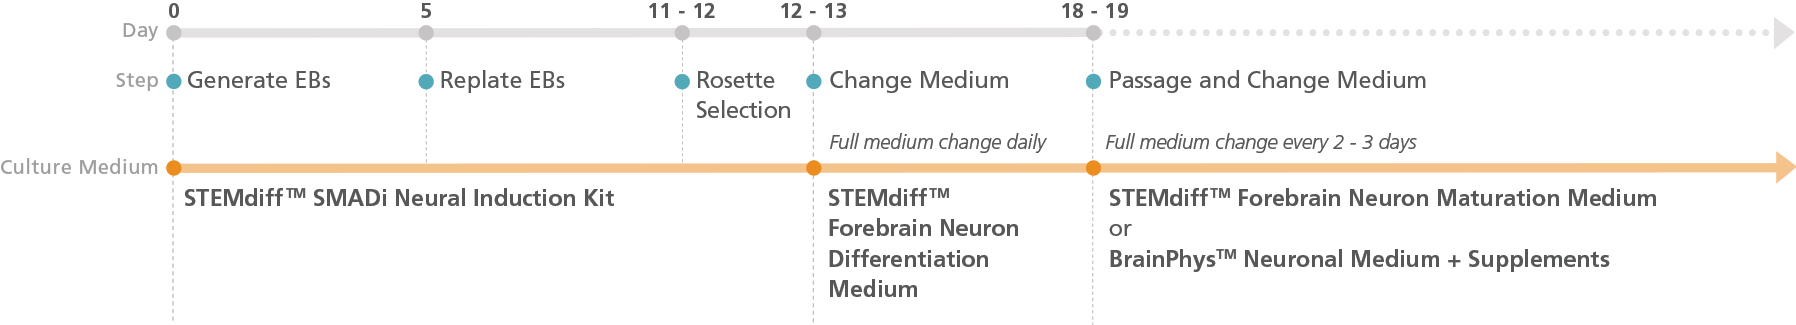 Experimental Protocol Schematic for STEMdiff™ Forebrain Neuron Differentiation and Maturation Kits (Embryoid Body Protocol)